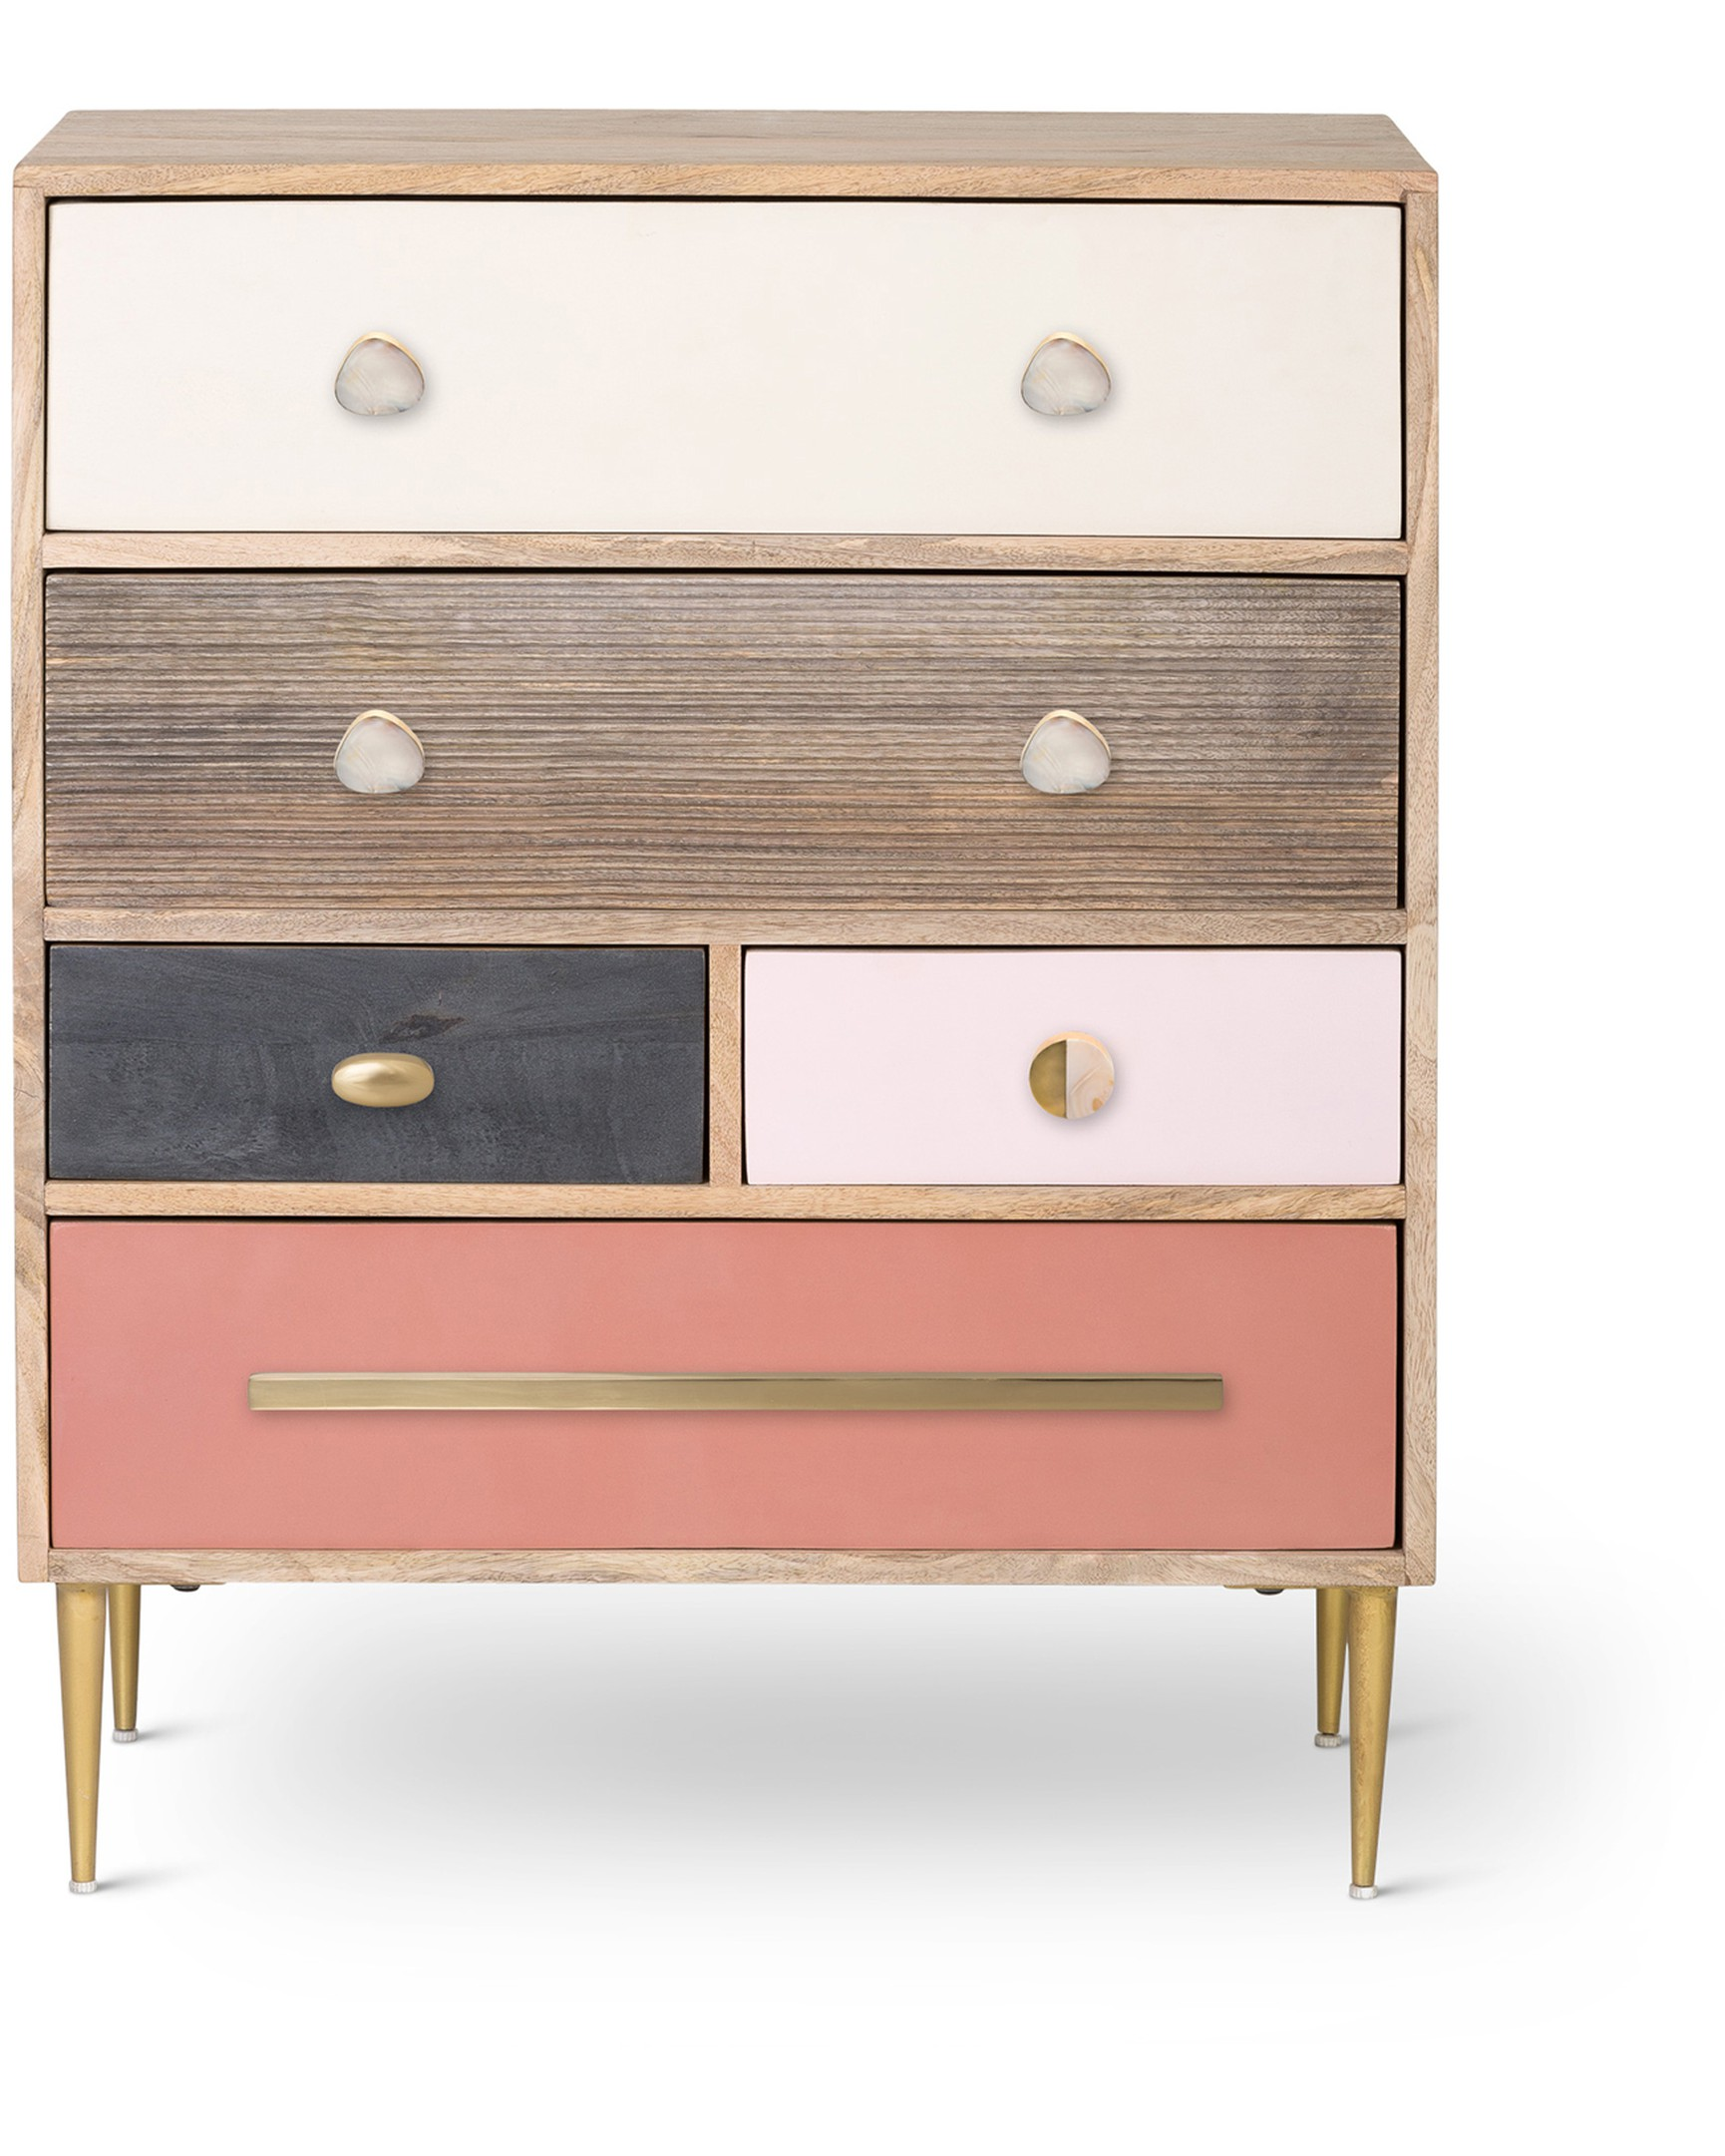 chests cabinets oliver bonas rh oliverbonas com chests and cabinets furniture Accent Cabinets with Drawers